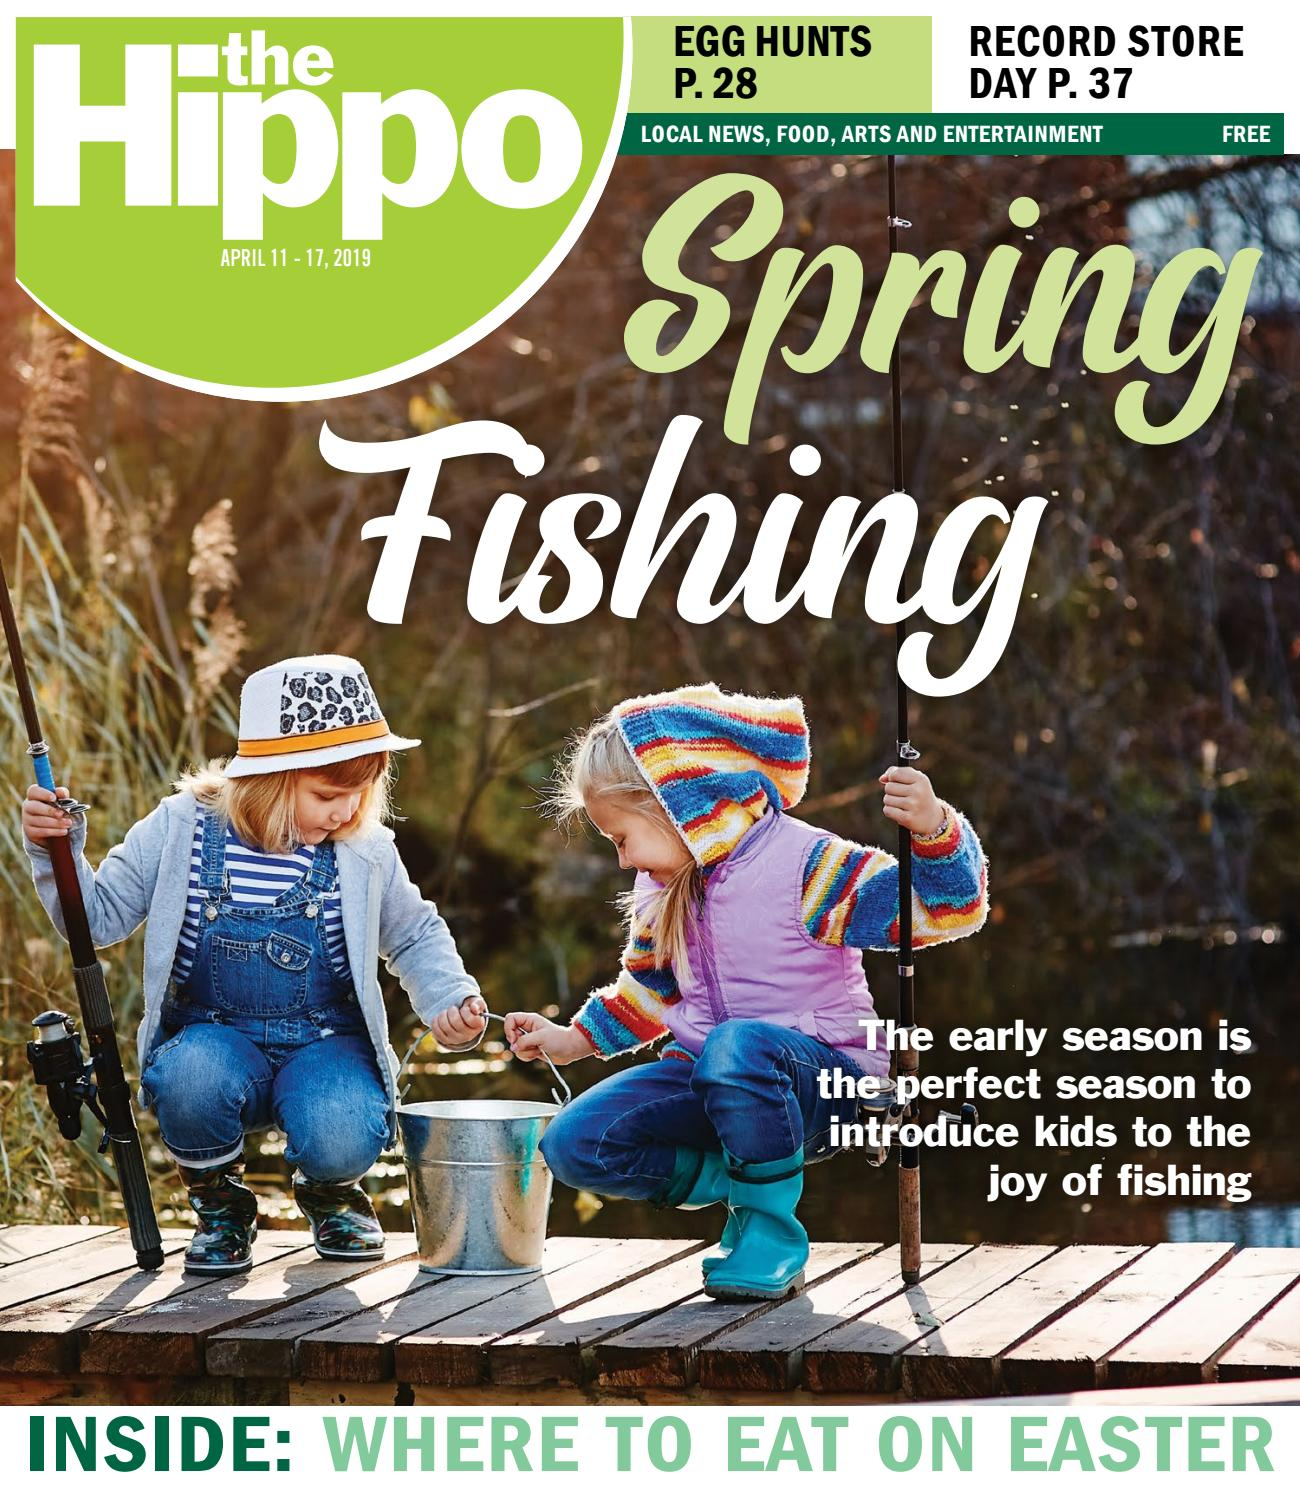 Hippo 4-11-19 by The Hippo - issuu